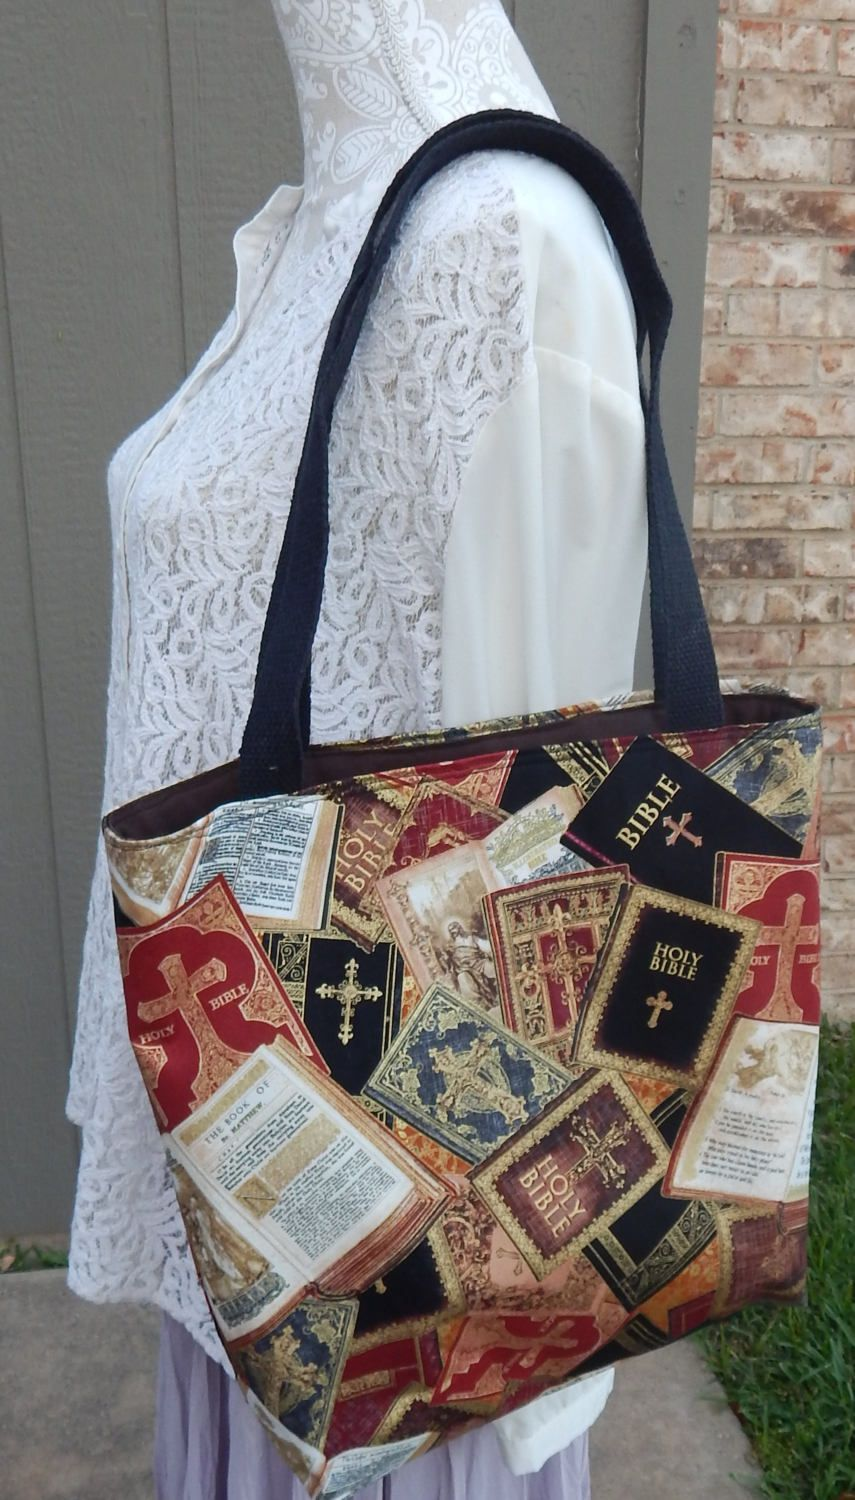 Holy Bible Therapist Bag